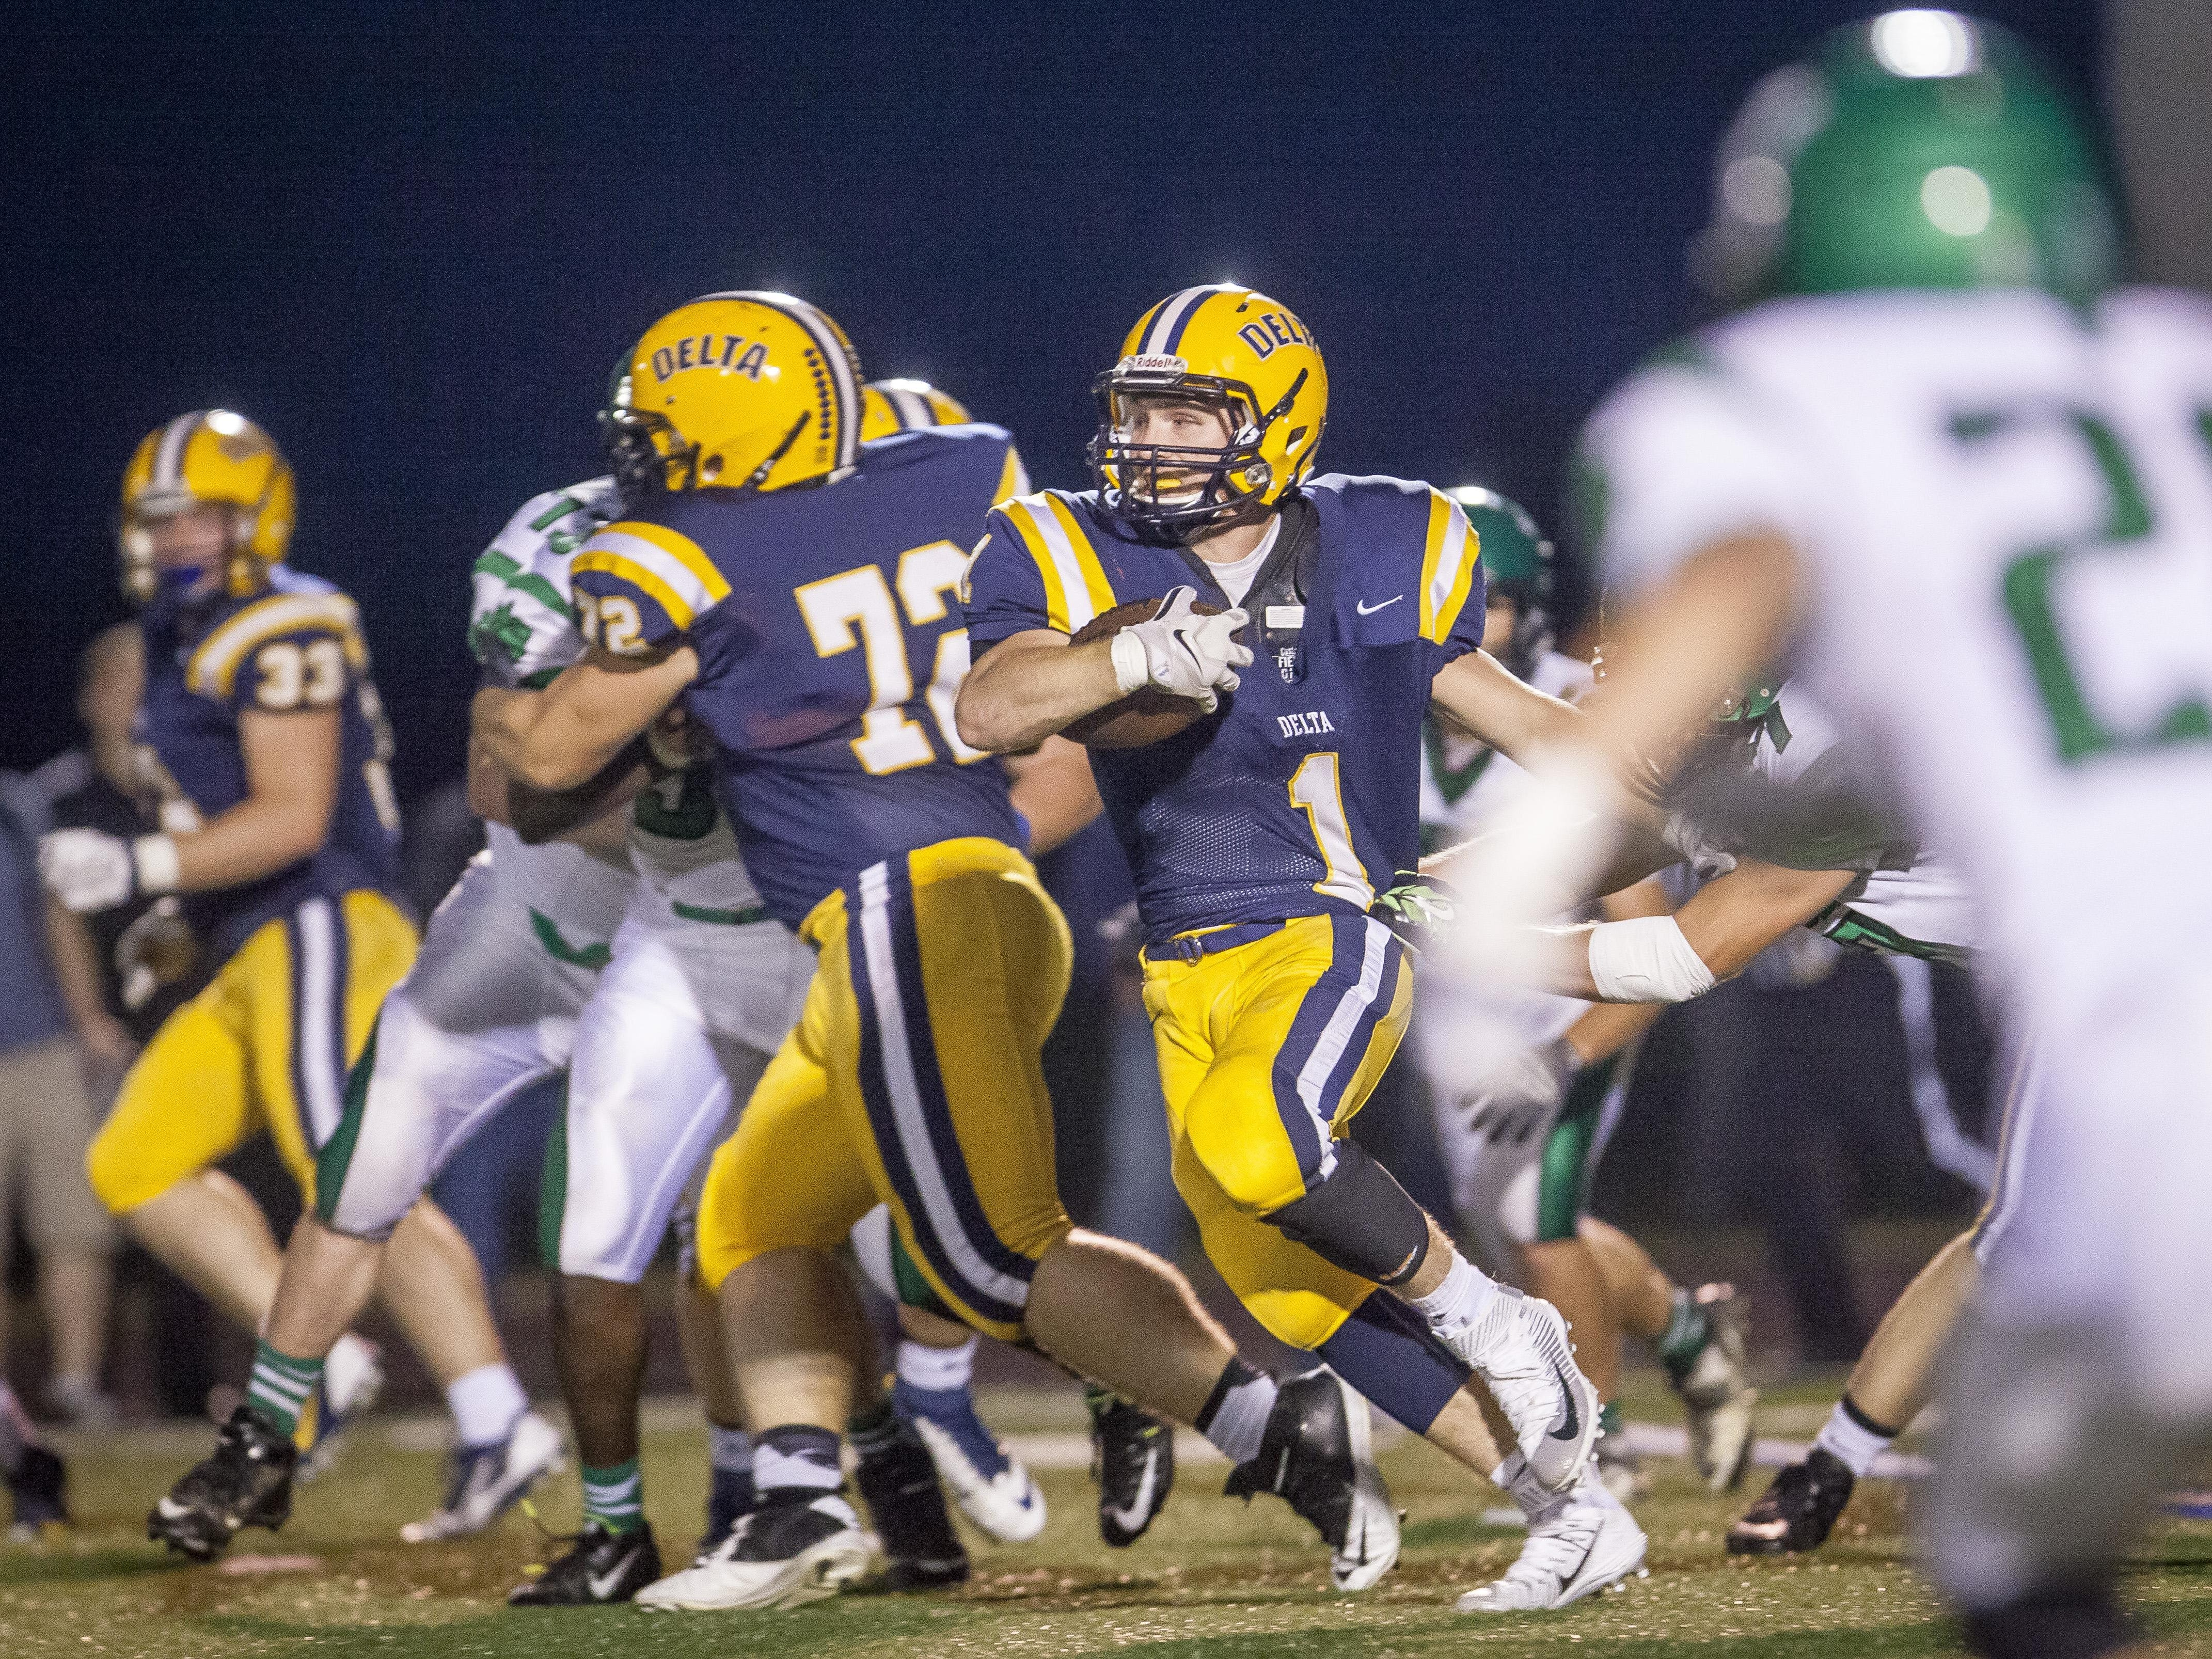 Delta's Zach Mills breaks through the line during a run Friday evening during the home game at Delta High School.